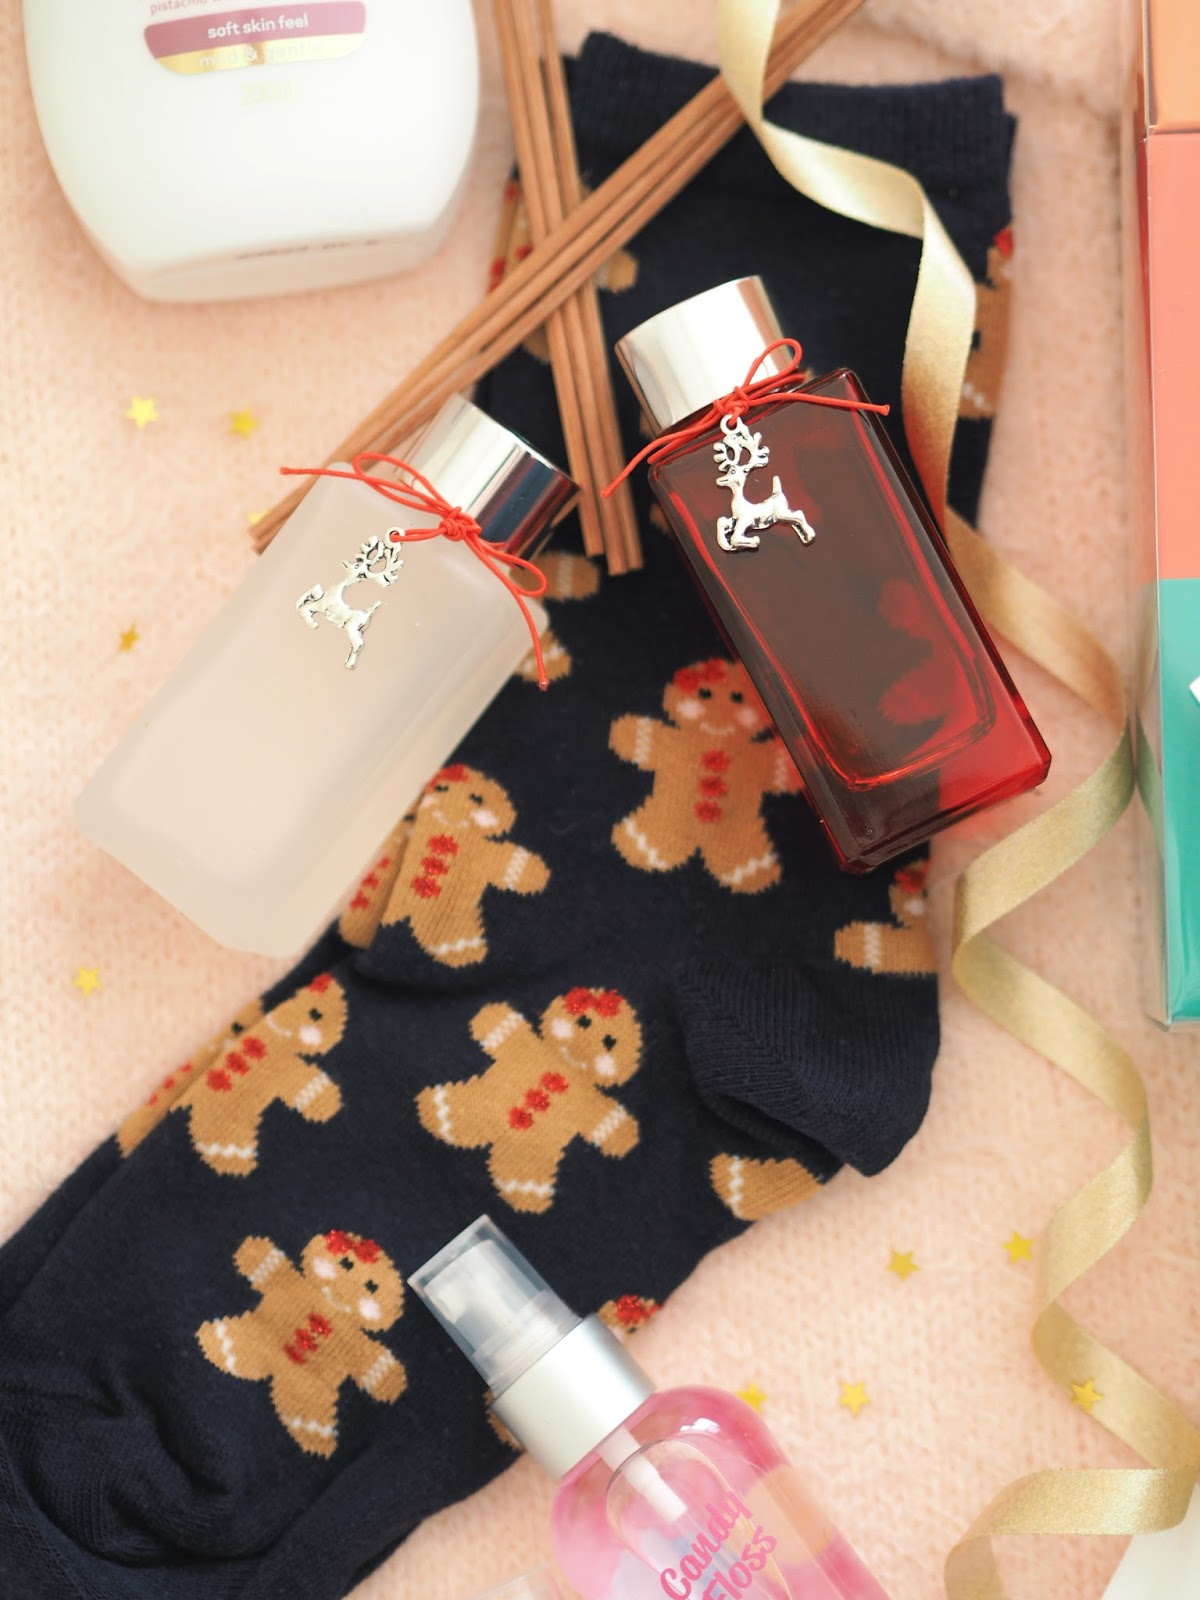 Stocking Filler Gift Guide, Katie Kirk Loves, UK Blogger, Beauty Blogger, Christmas, Christmas Gifts, Gift Guide, Gift Ideas, Beauty Gifts, Lifestyle, Luxury Gifts, Oasis Fashion, Next Gifts, Secret Santa Gifts, The Little Candle Co, So...? Perfume, Christmas Fragrances, Fragranced Gifts, Christmas Scents, Cat Lover, Yumi Clothiing,